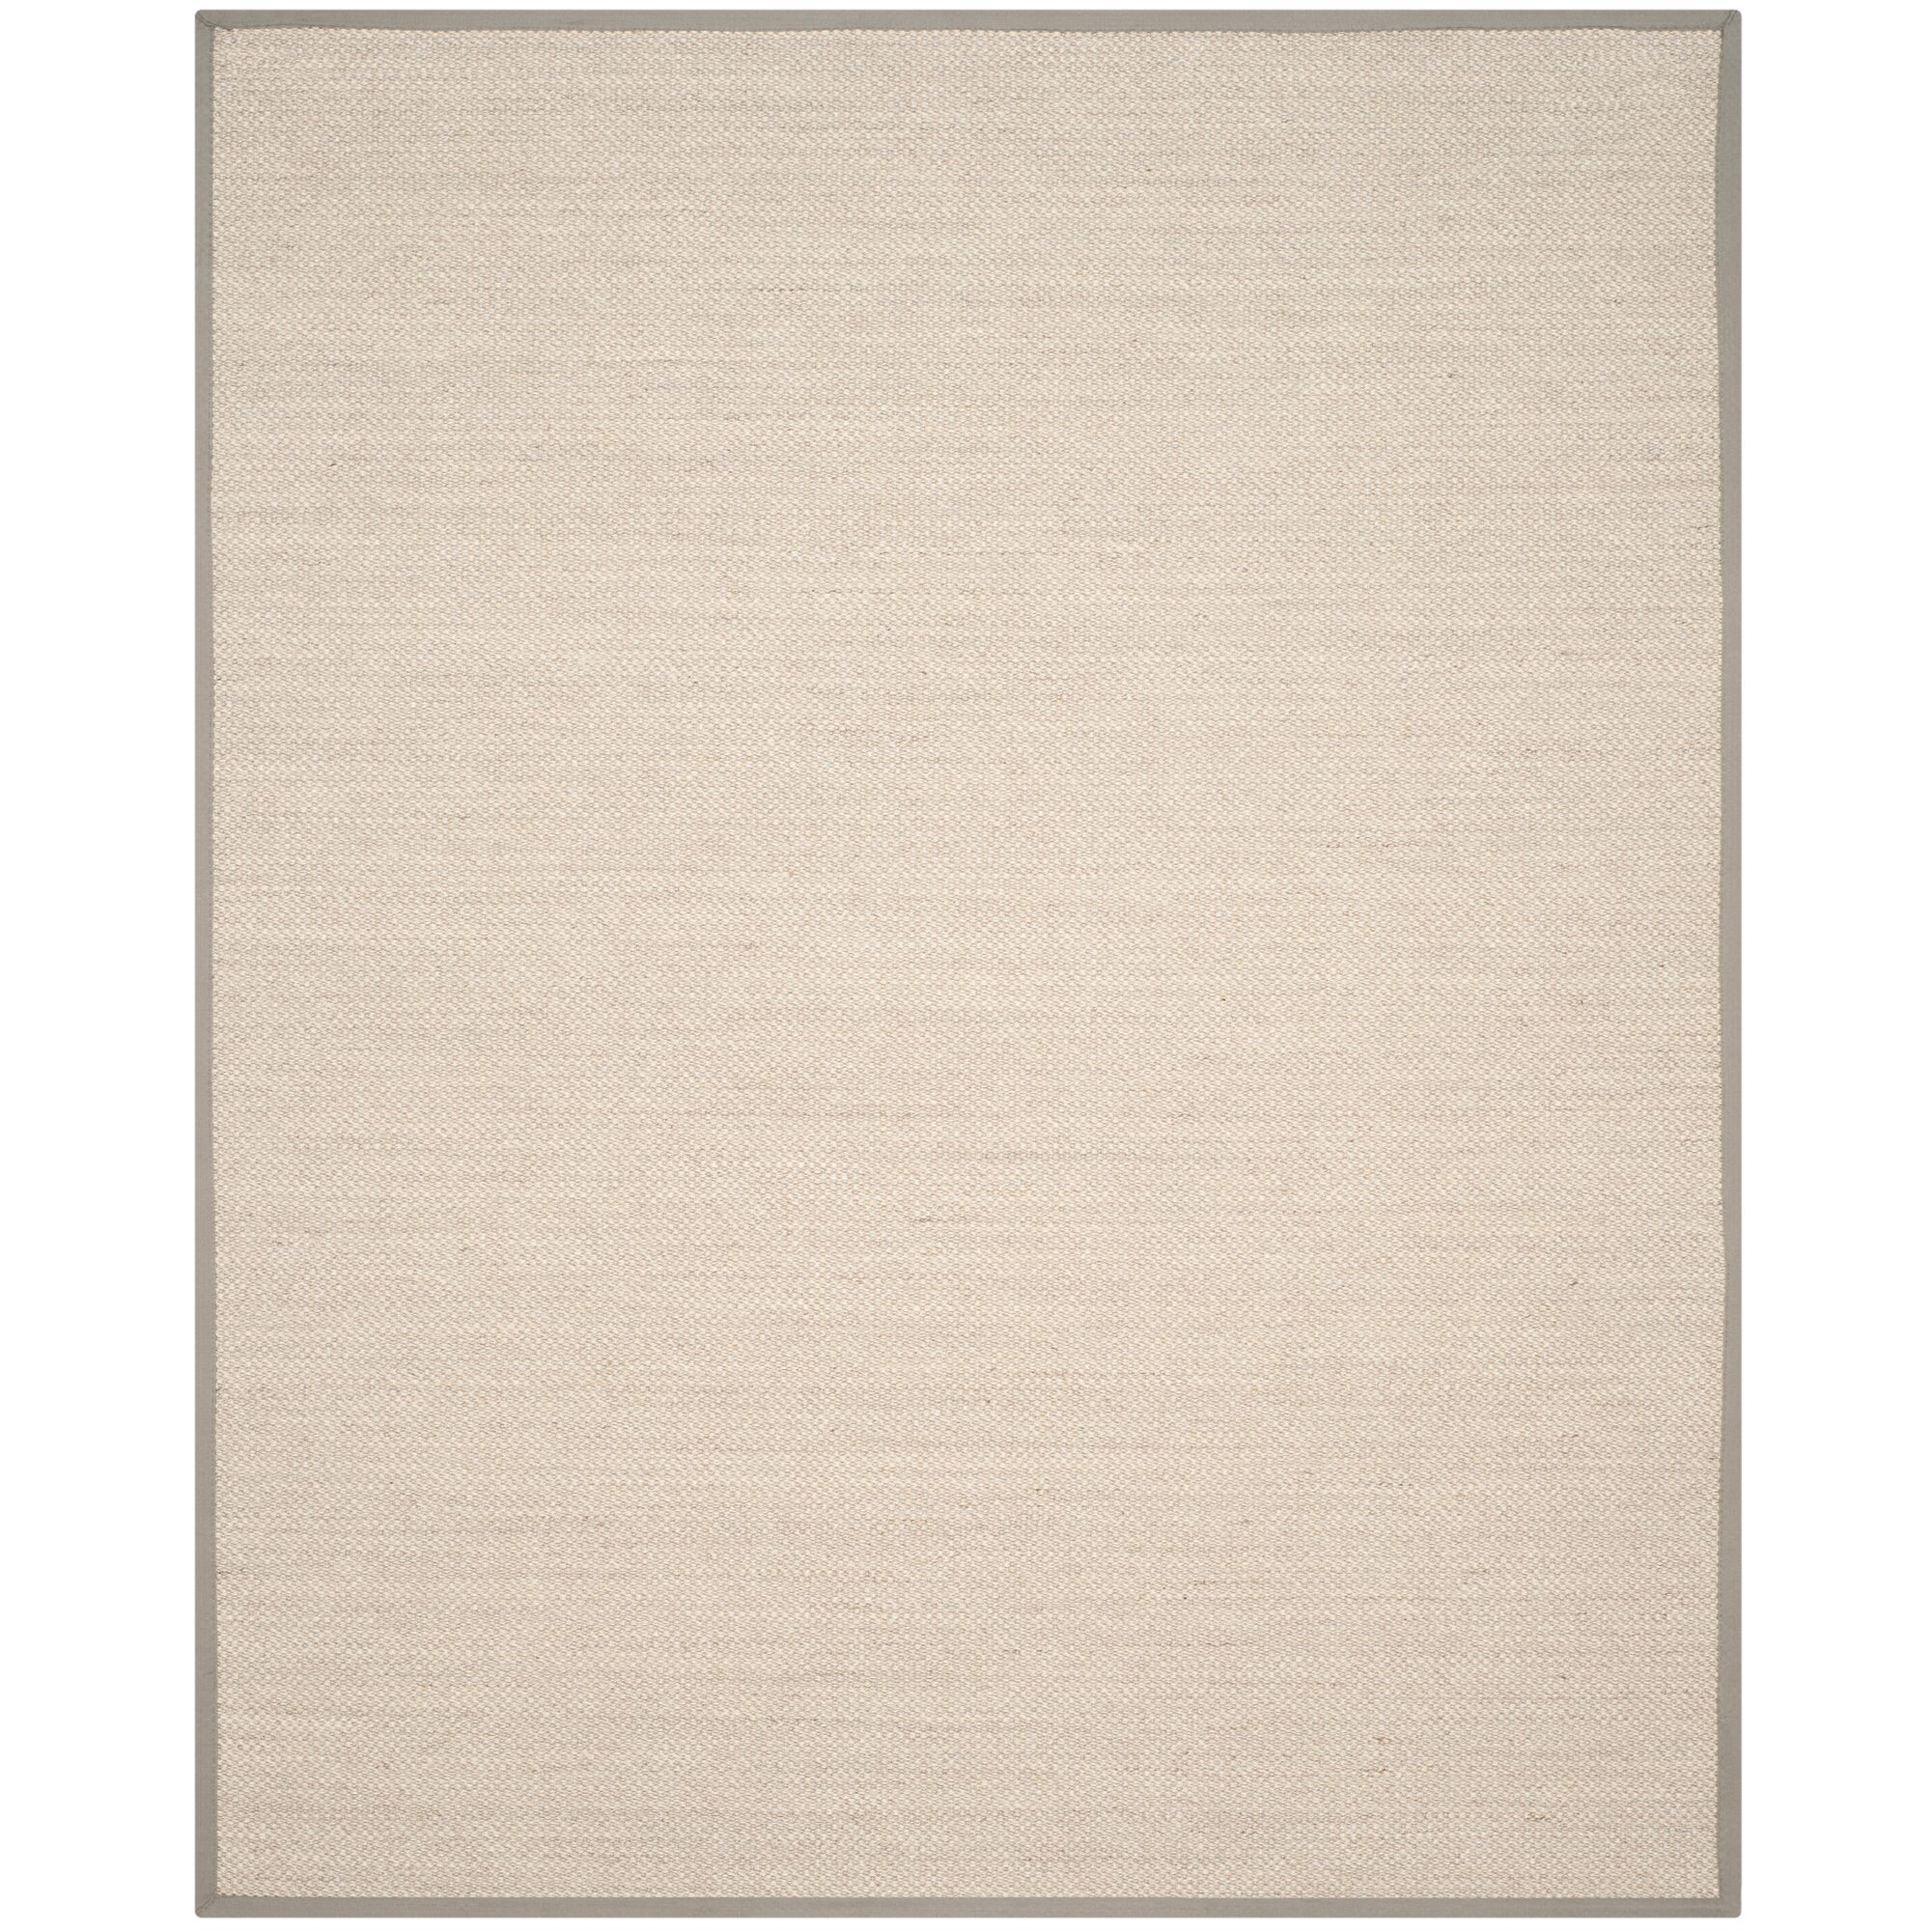 Monadnock Marble/Khaki Area Rug Rug Size: Rectangle 8' x 10'